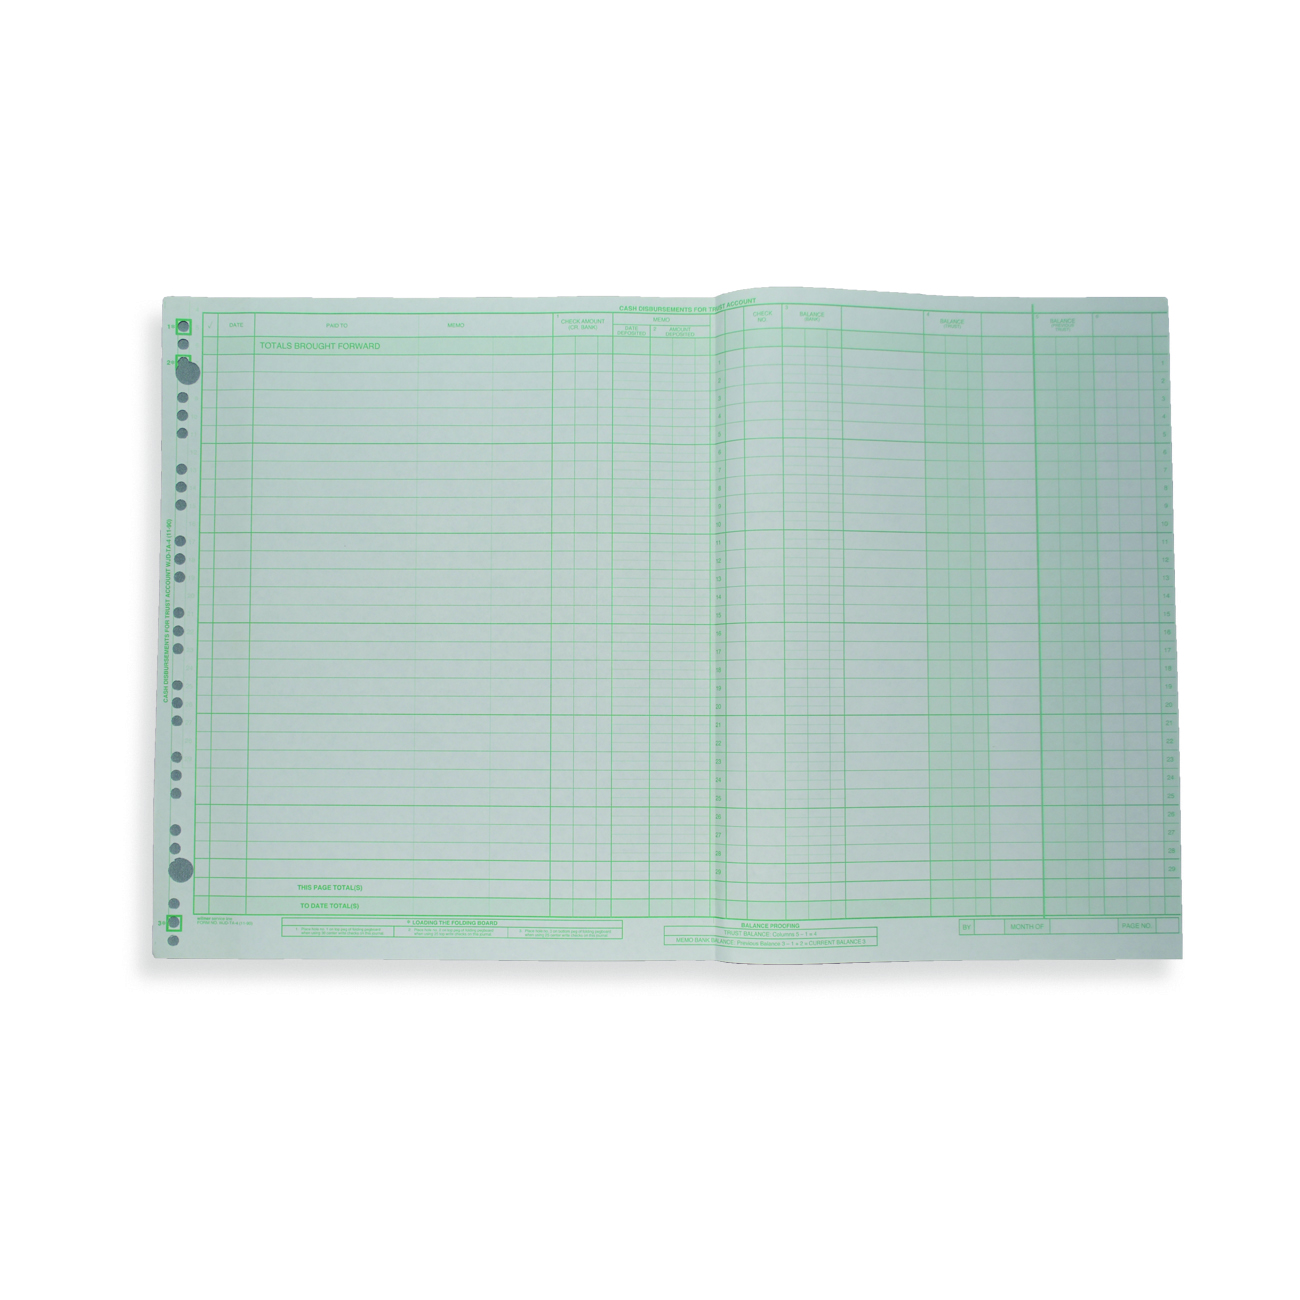 "Trust Account Disbursement Journal 11"" x 17"" Trust Account Disbursement Journal"